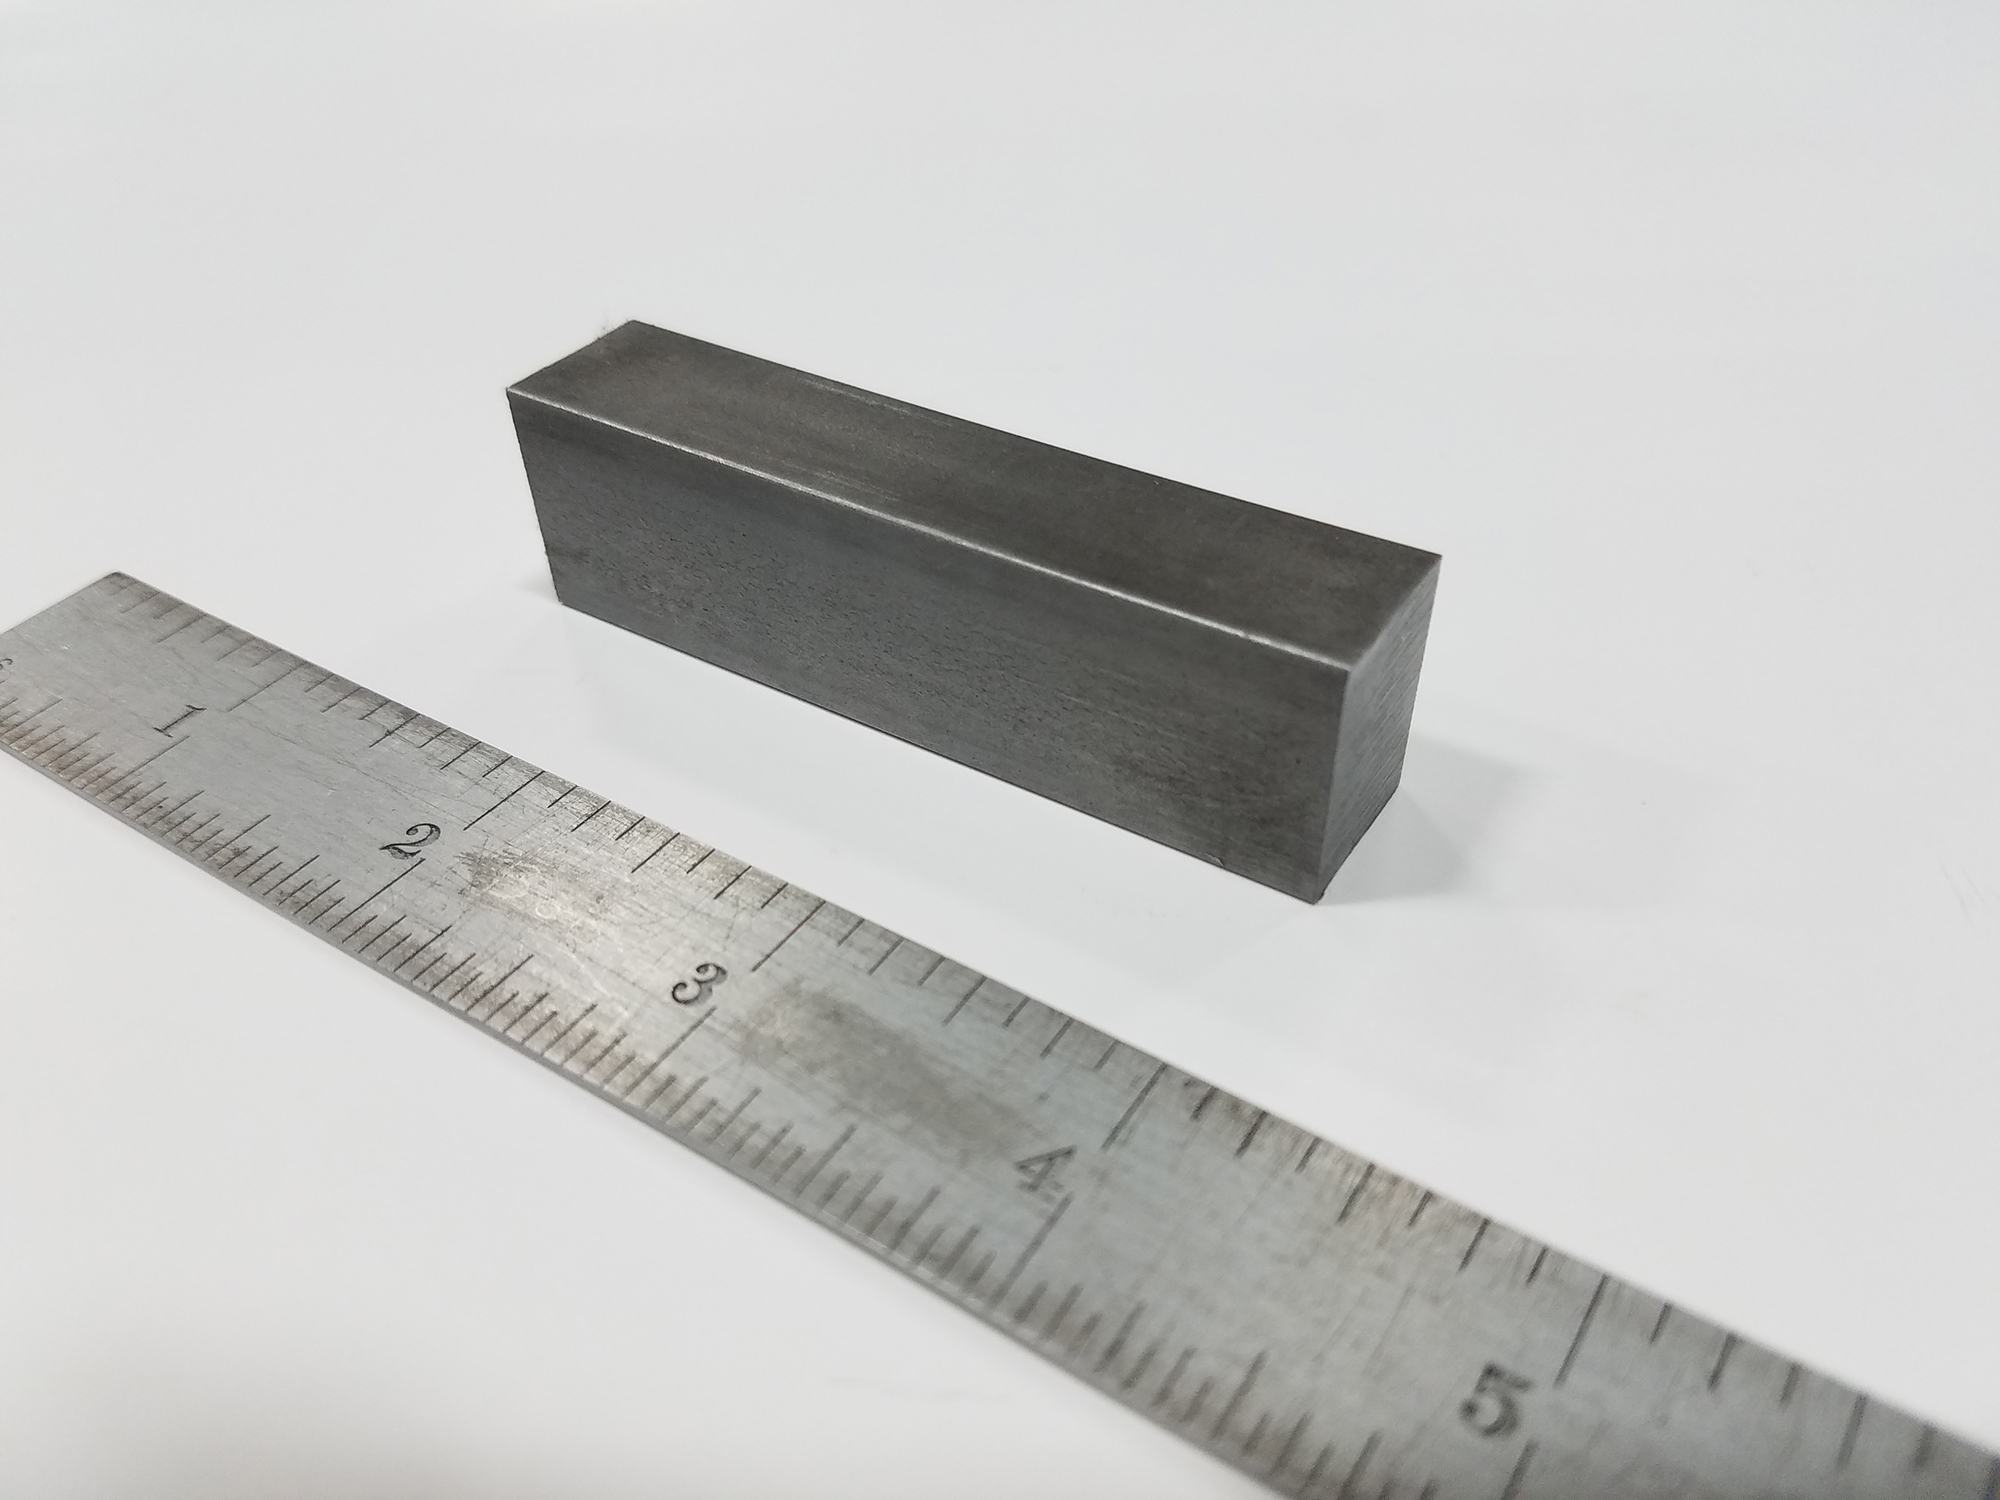 CNC Sawed Part - Material: 1018 Steel Stock